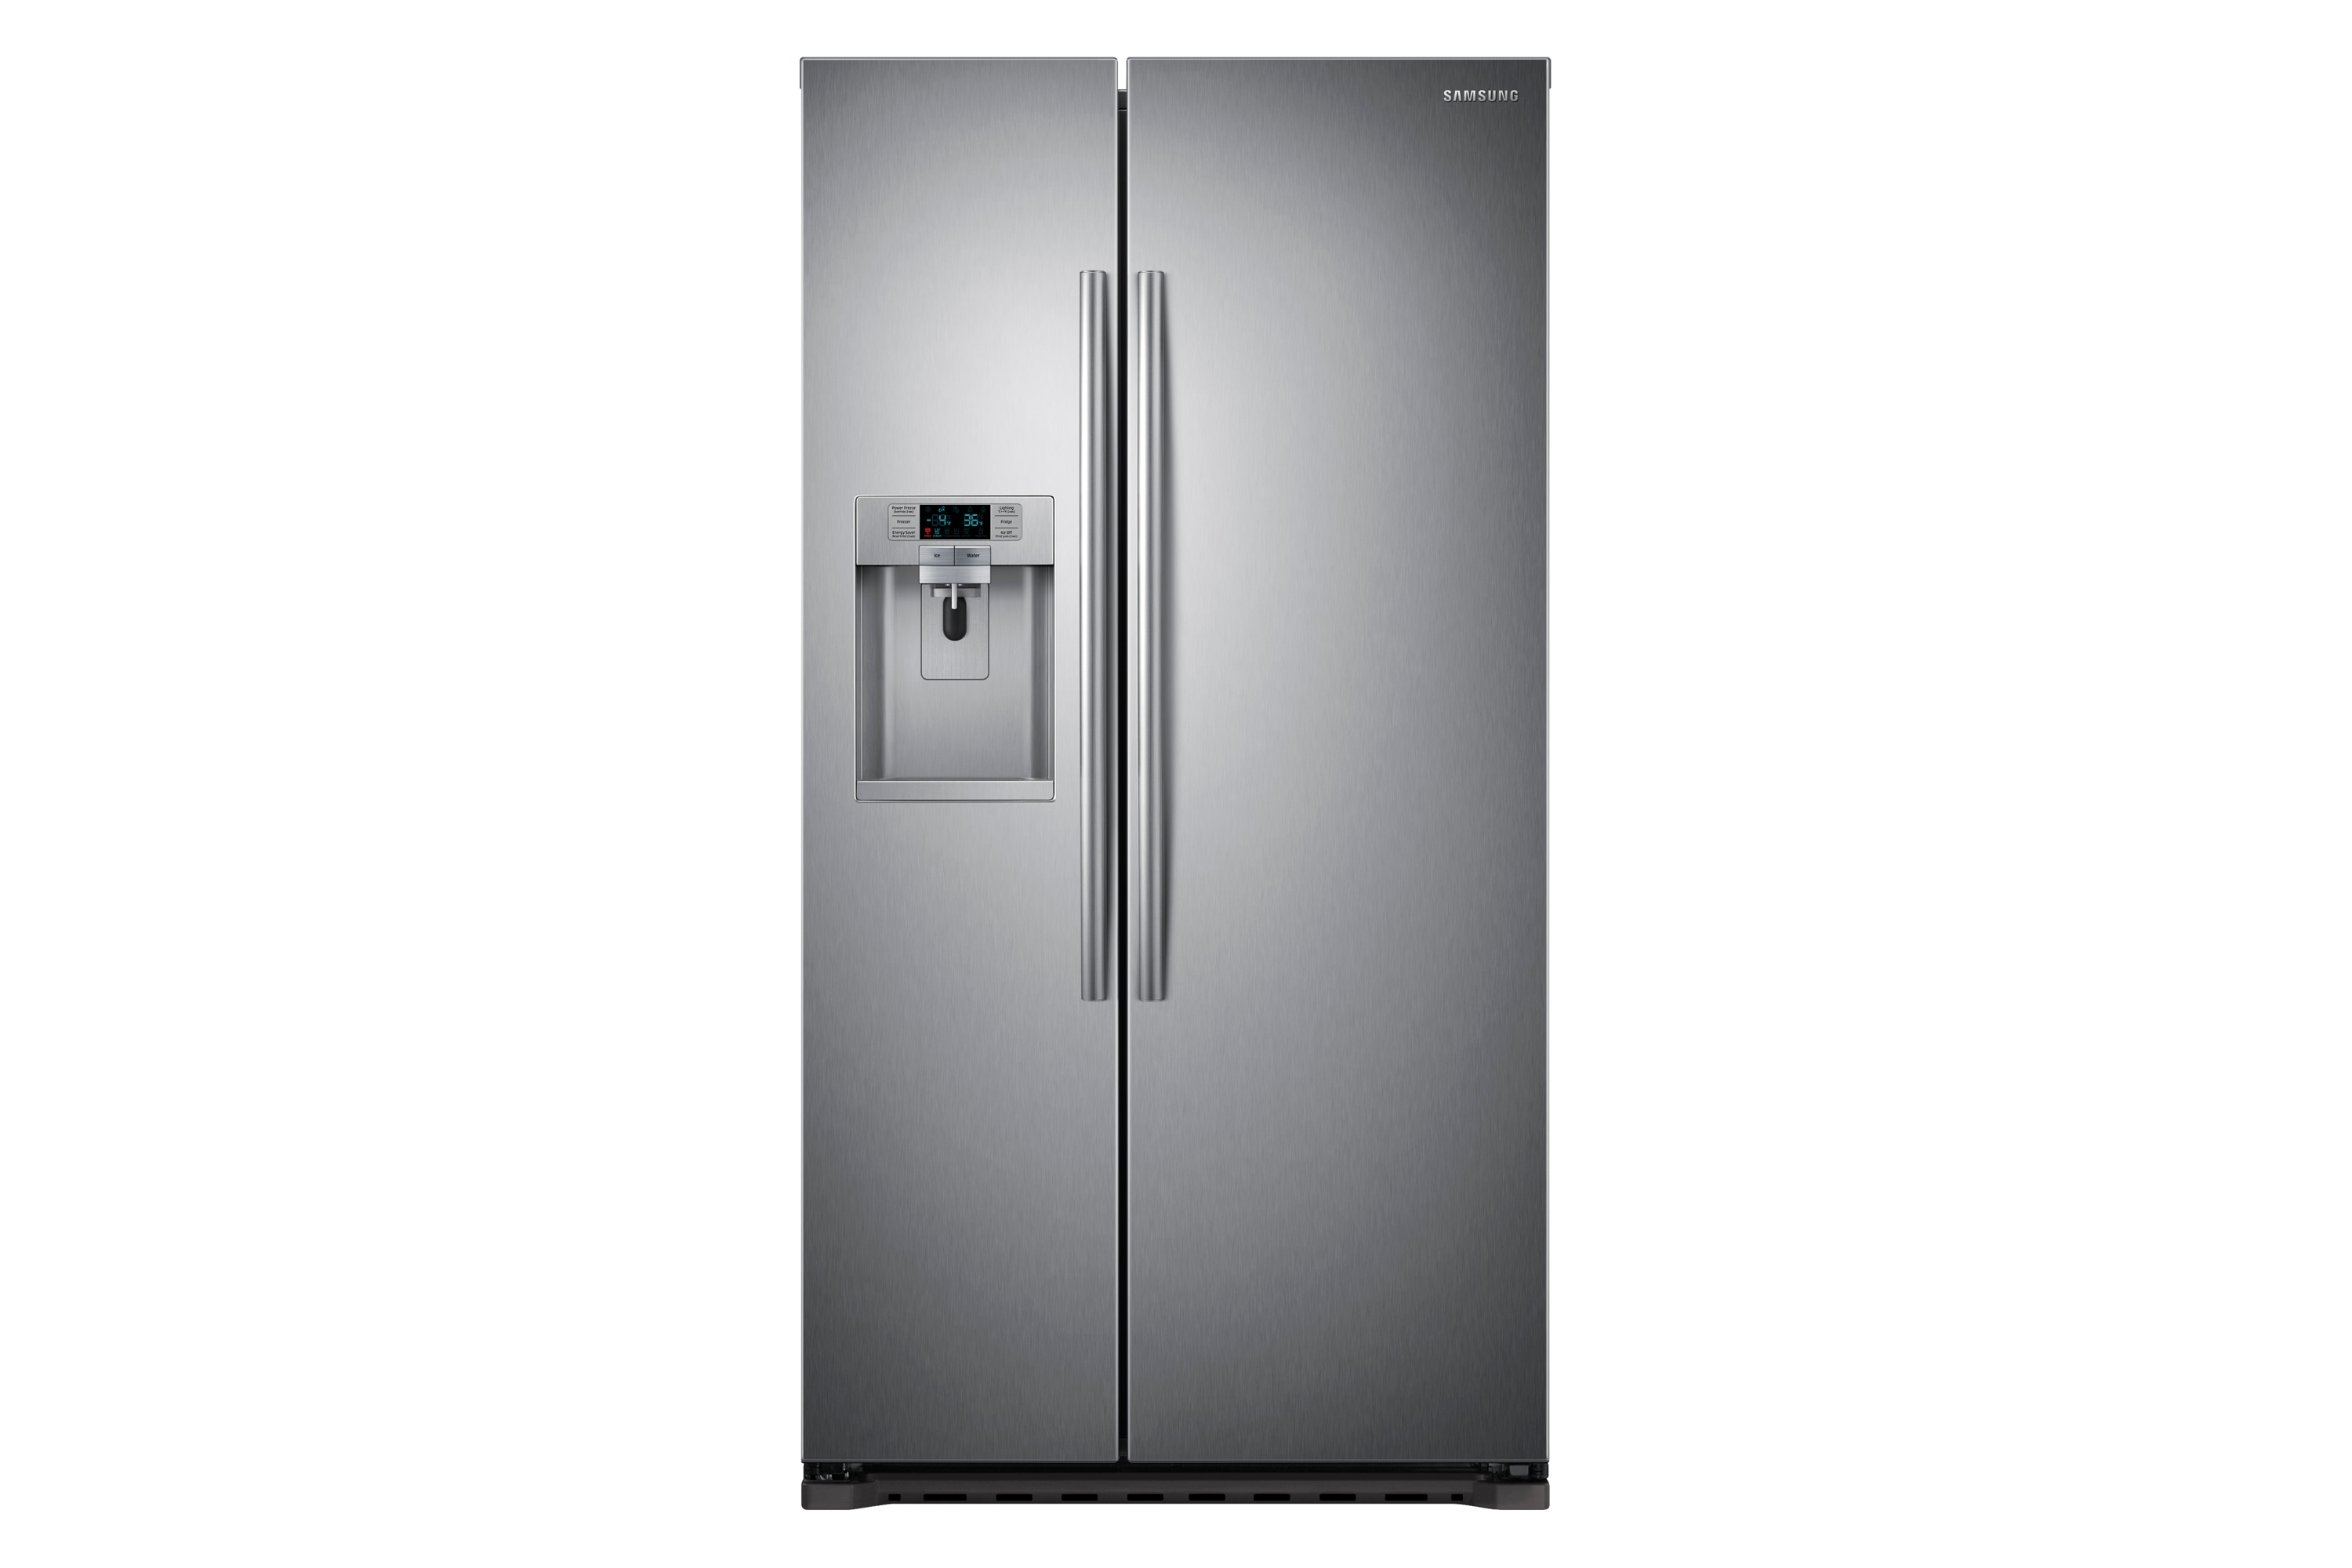 RS22HDHPNSR Side by Side Refrigerator with Twin Cooling, 22.3 cu. Ft.